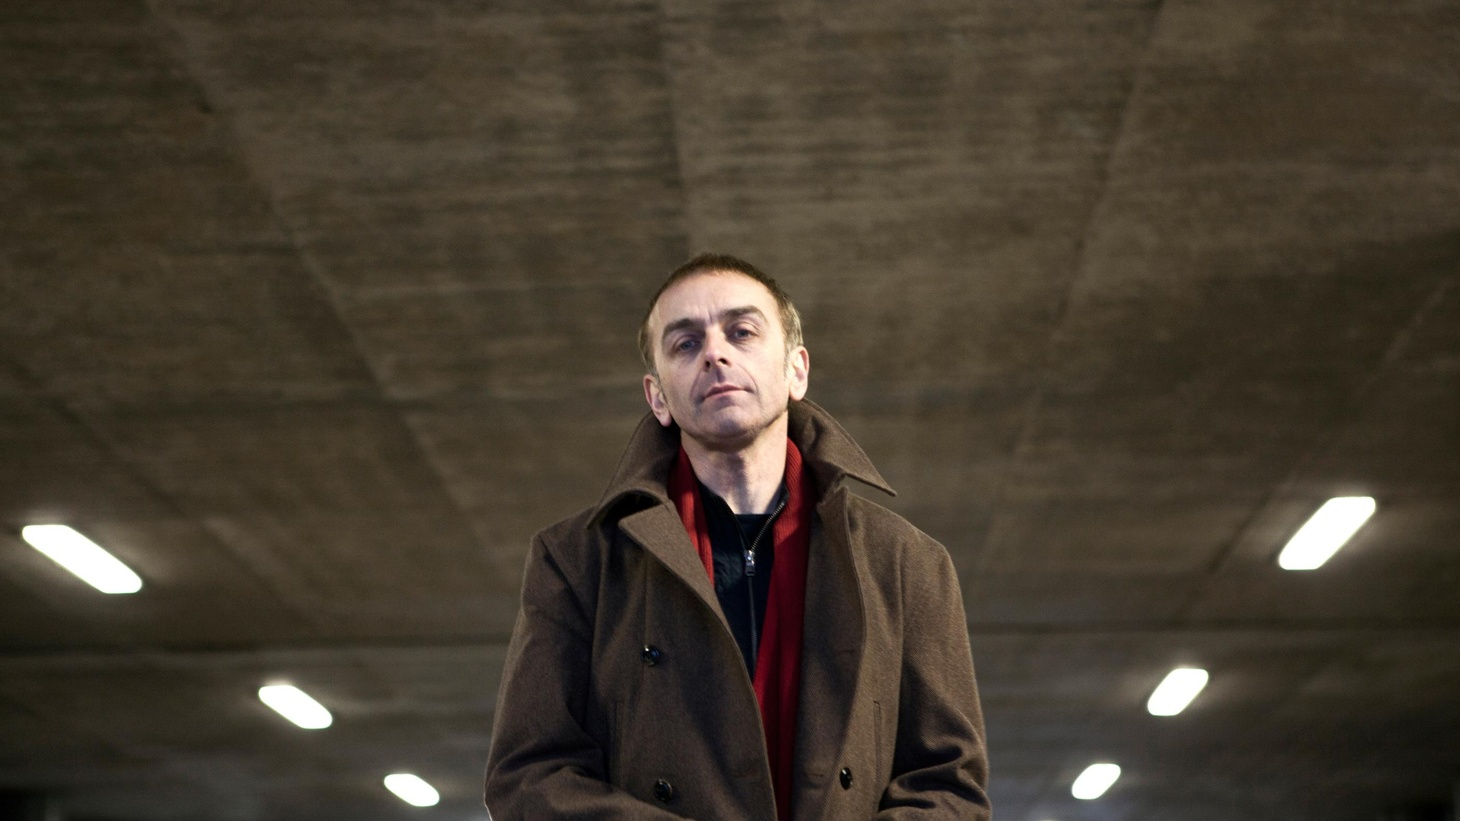 Karl Hyde (better known as half of Underworld) has always been fascinated with cityscapes. His first solo recording's made up of aural snapshots captured on trains and...